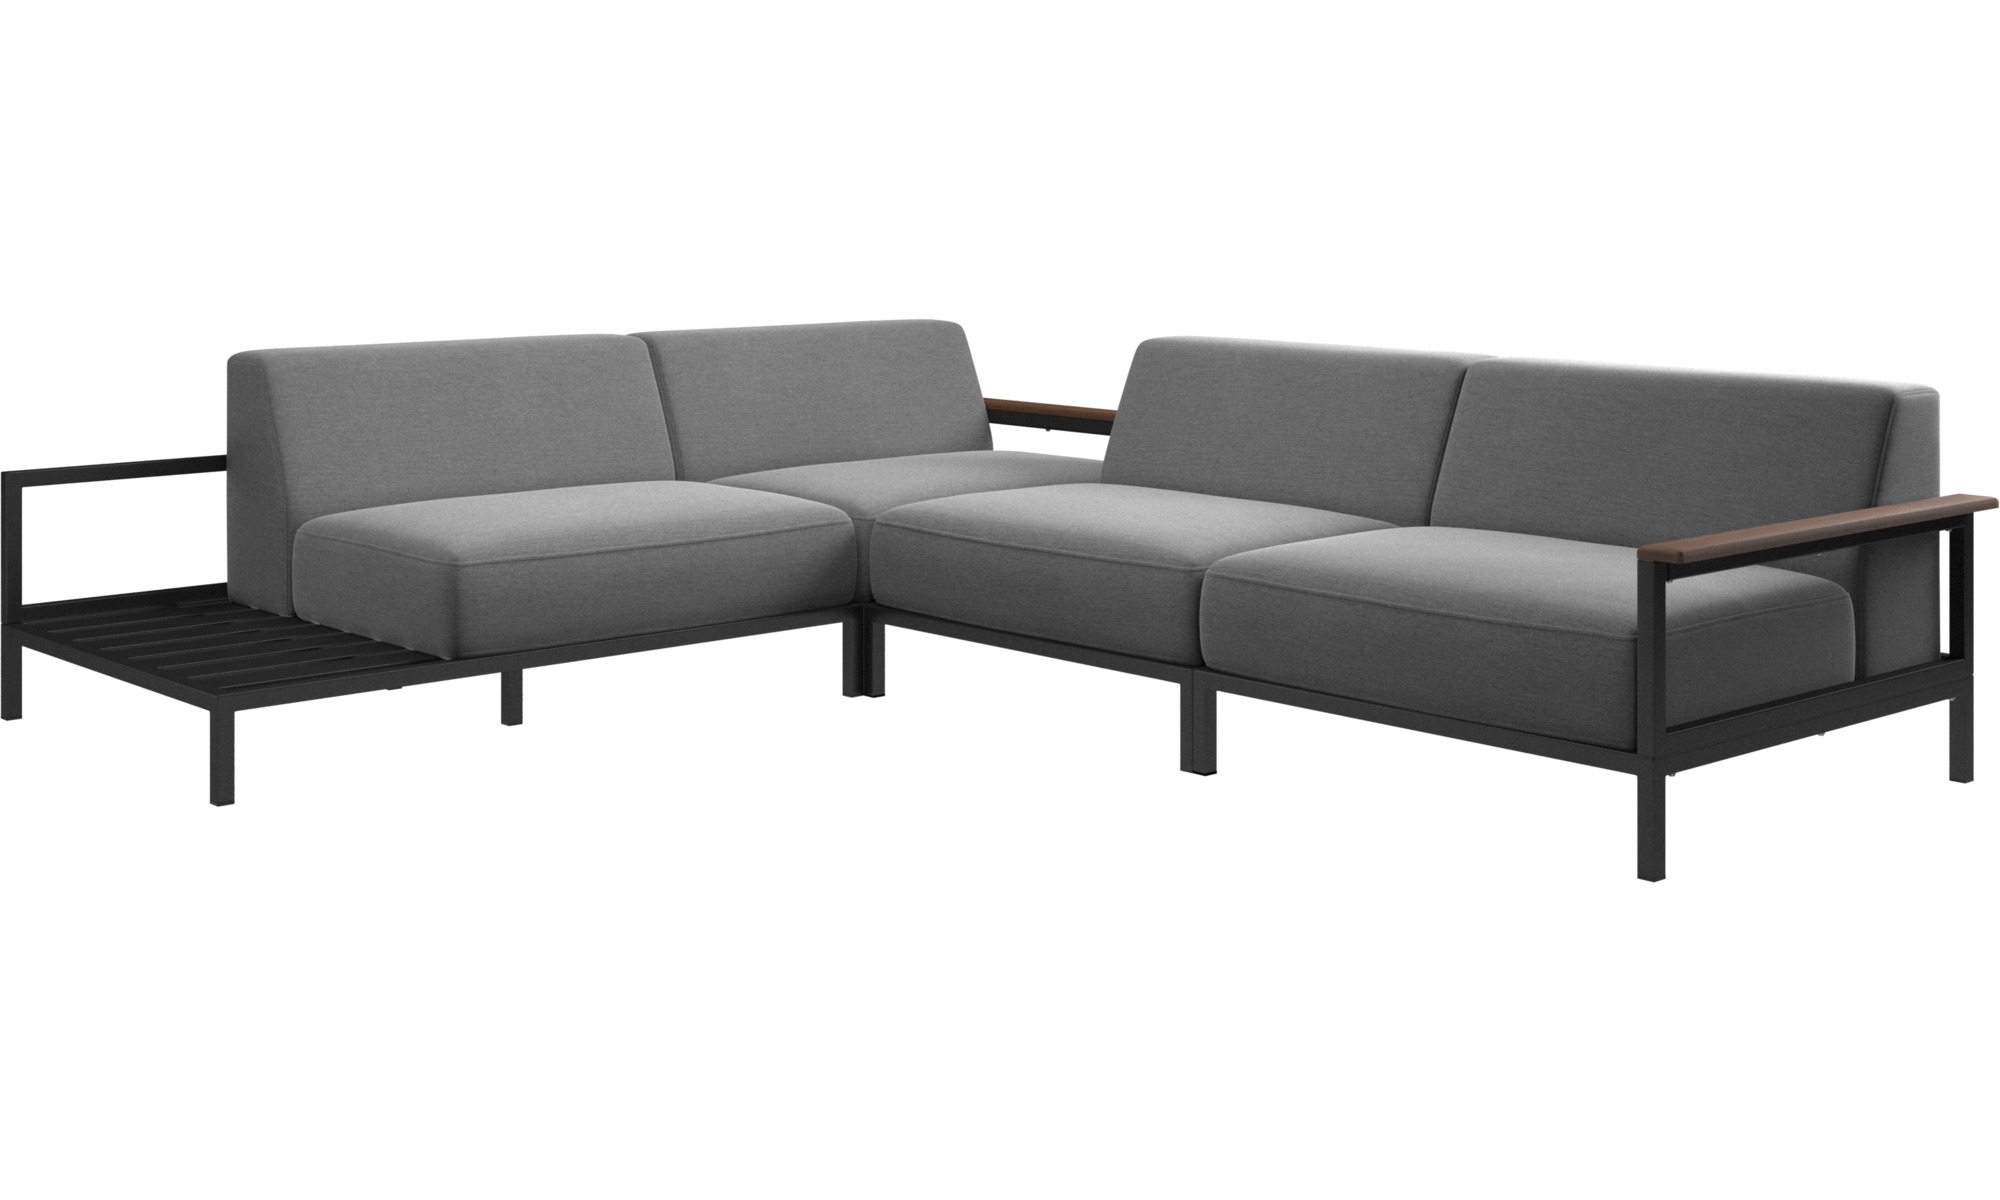 Outdoor Sofas Rome Sofa Grey Fabric